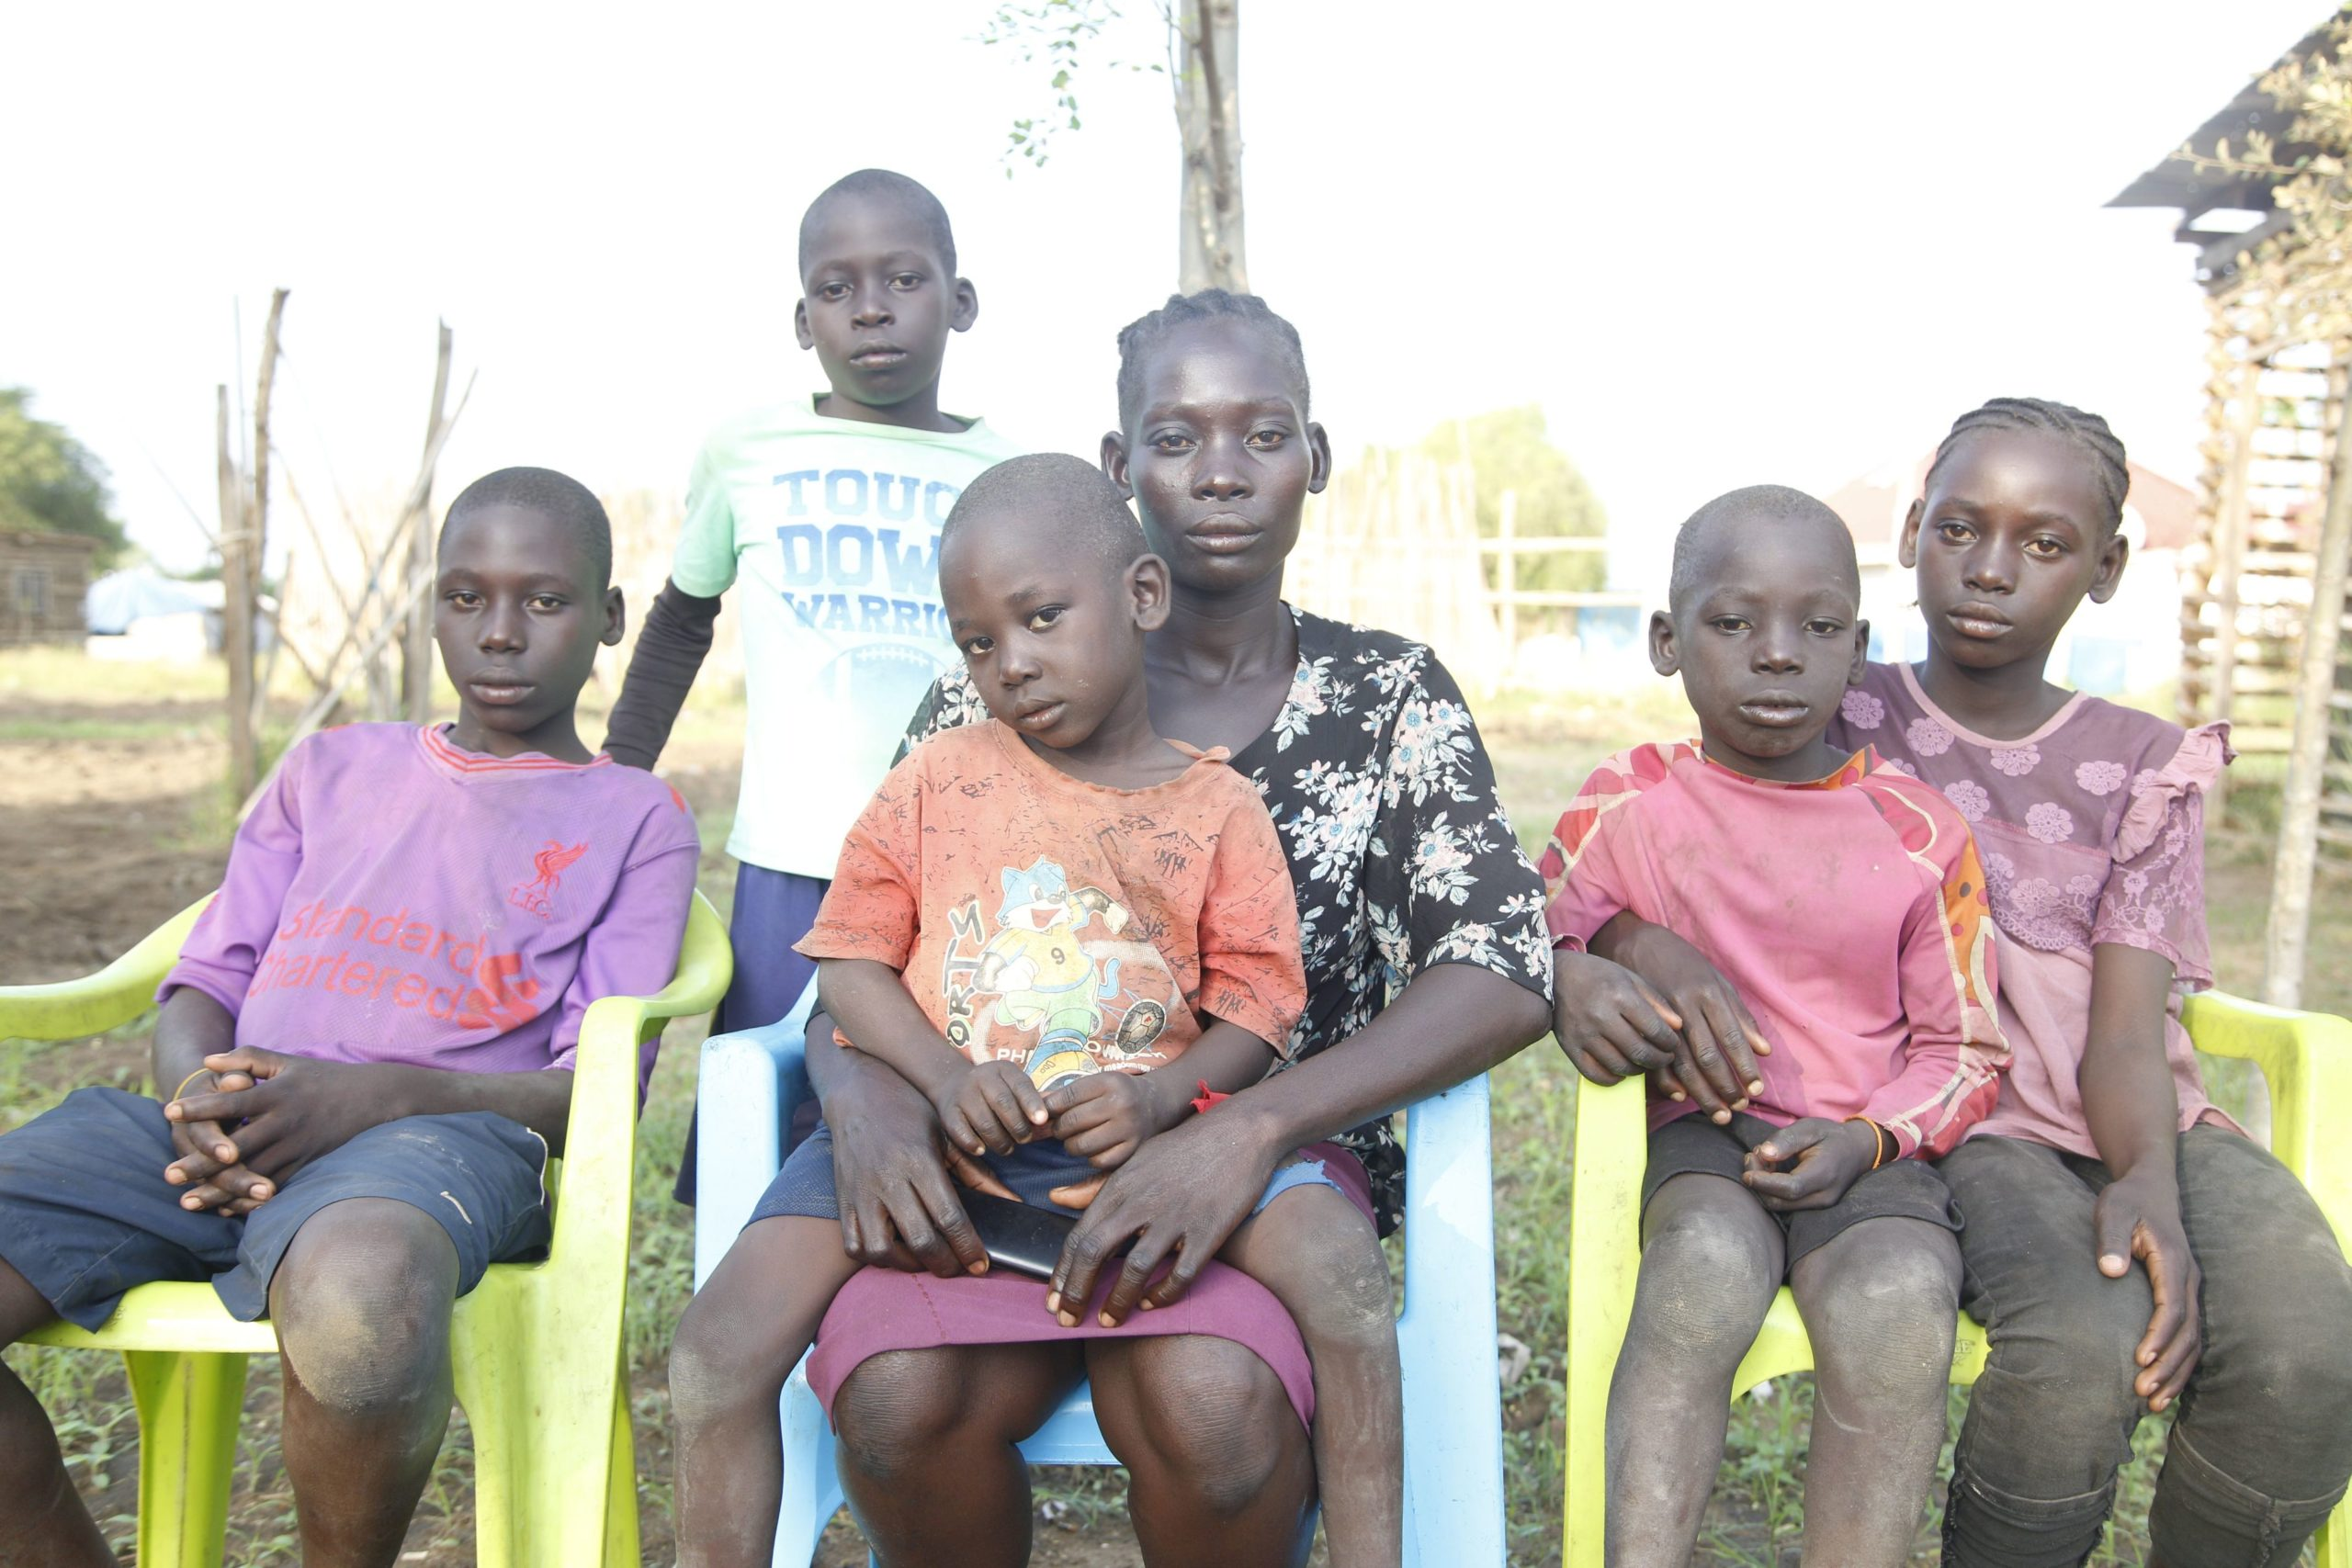 Joy (27) is the Mother of 5 children, three of whome were born into conflict. Photo credit Achuoth Deng/CAFOD and Trócaire in Partnership